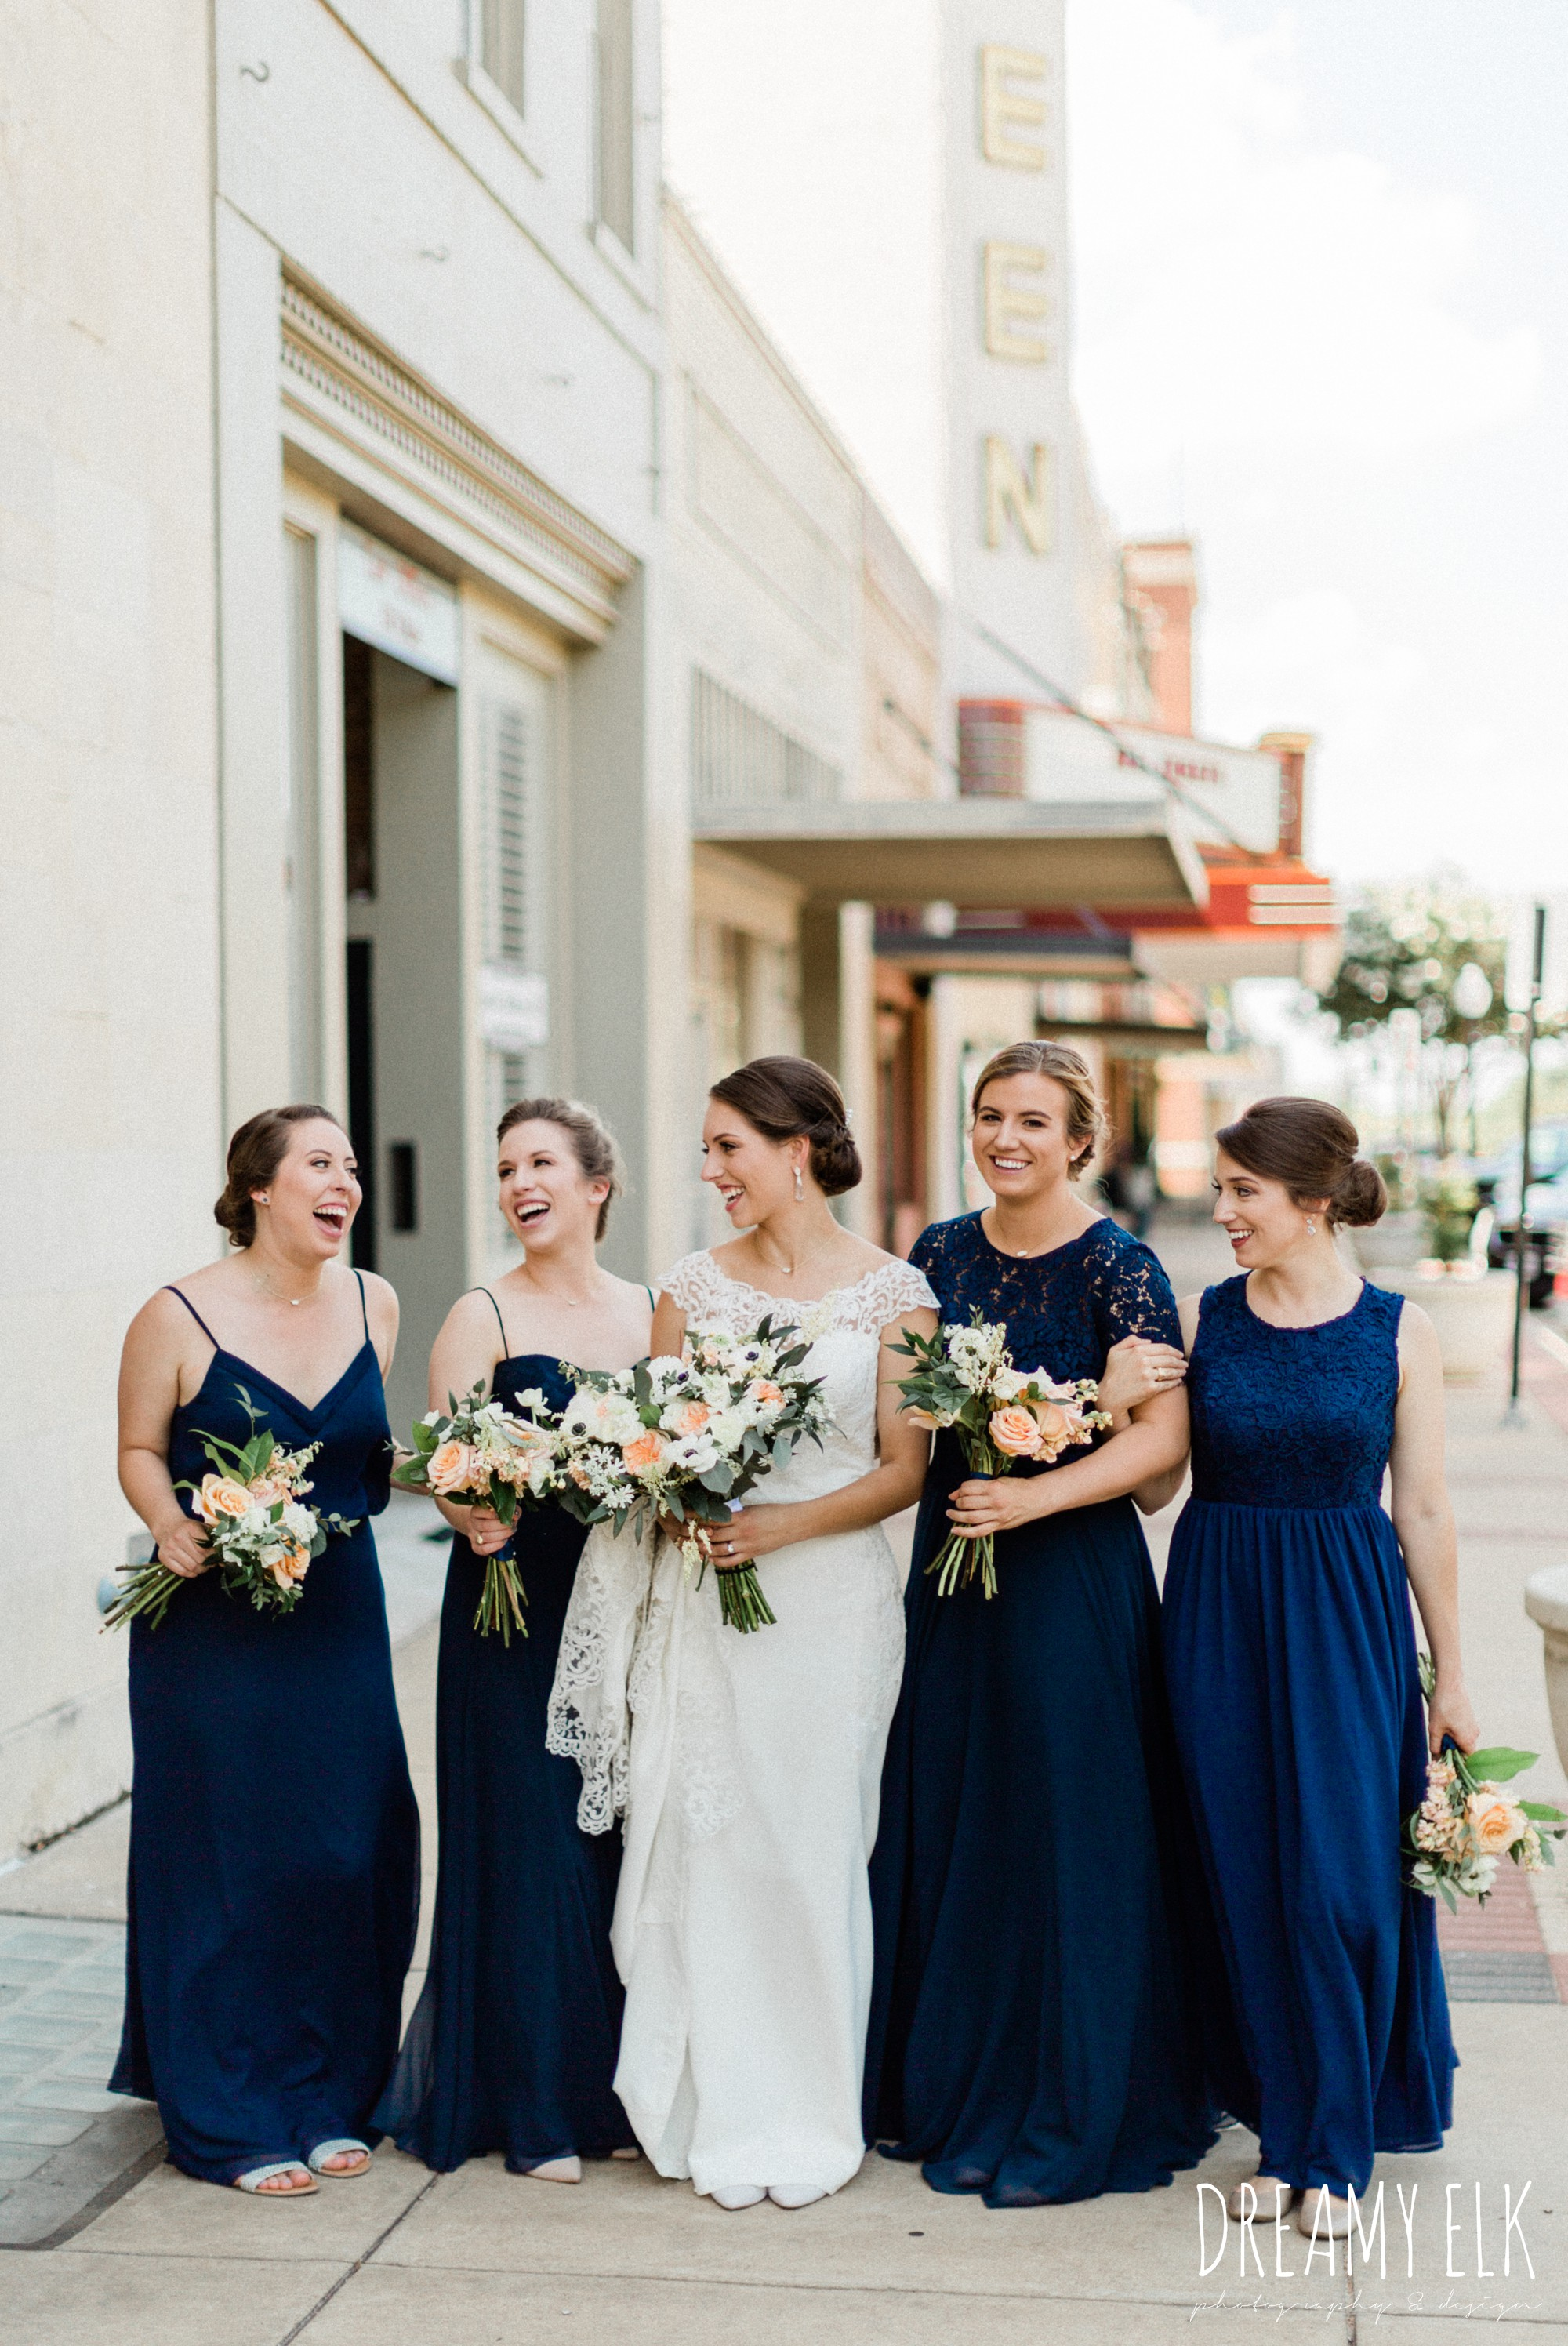 long navy mix matched bridesmaids dresses, bride, essense of australia column dress, unforgettable floral, spring wedding photo college station texas, dreamy elk photography and design